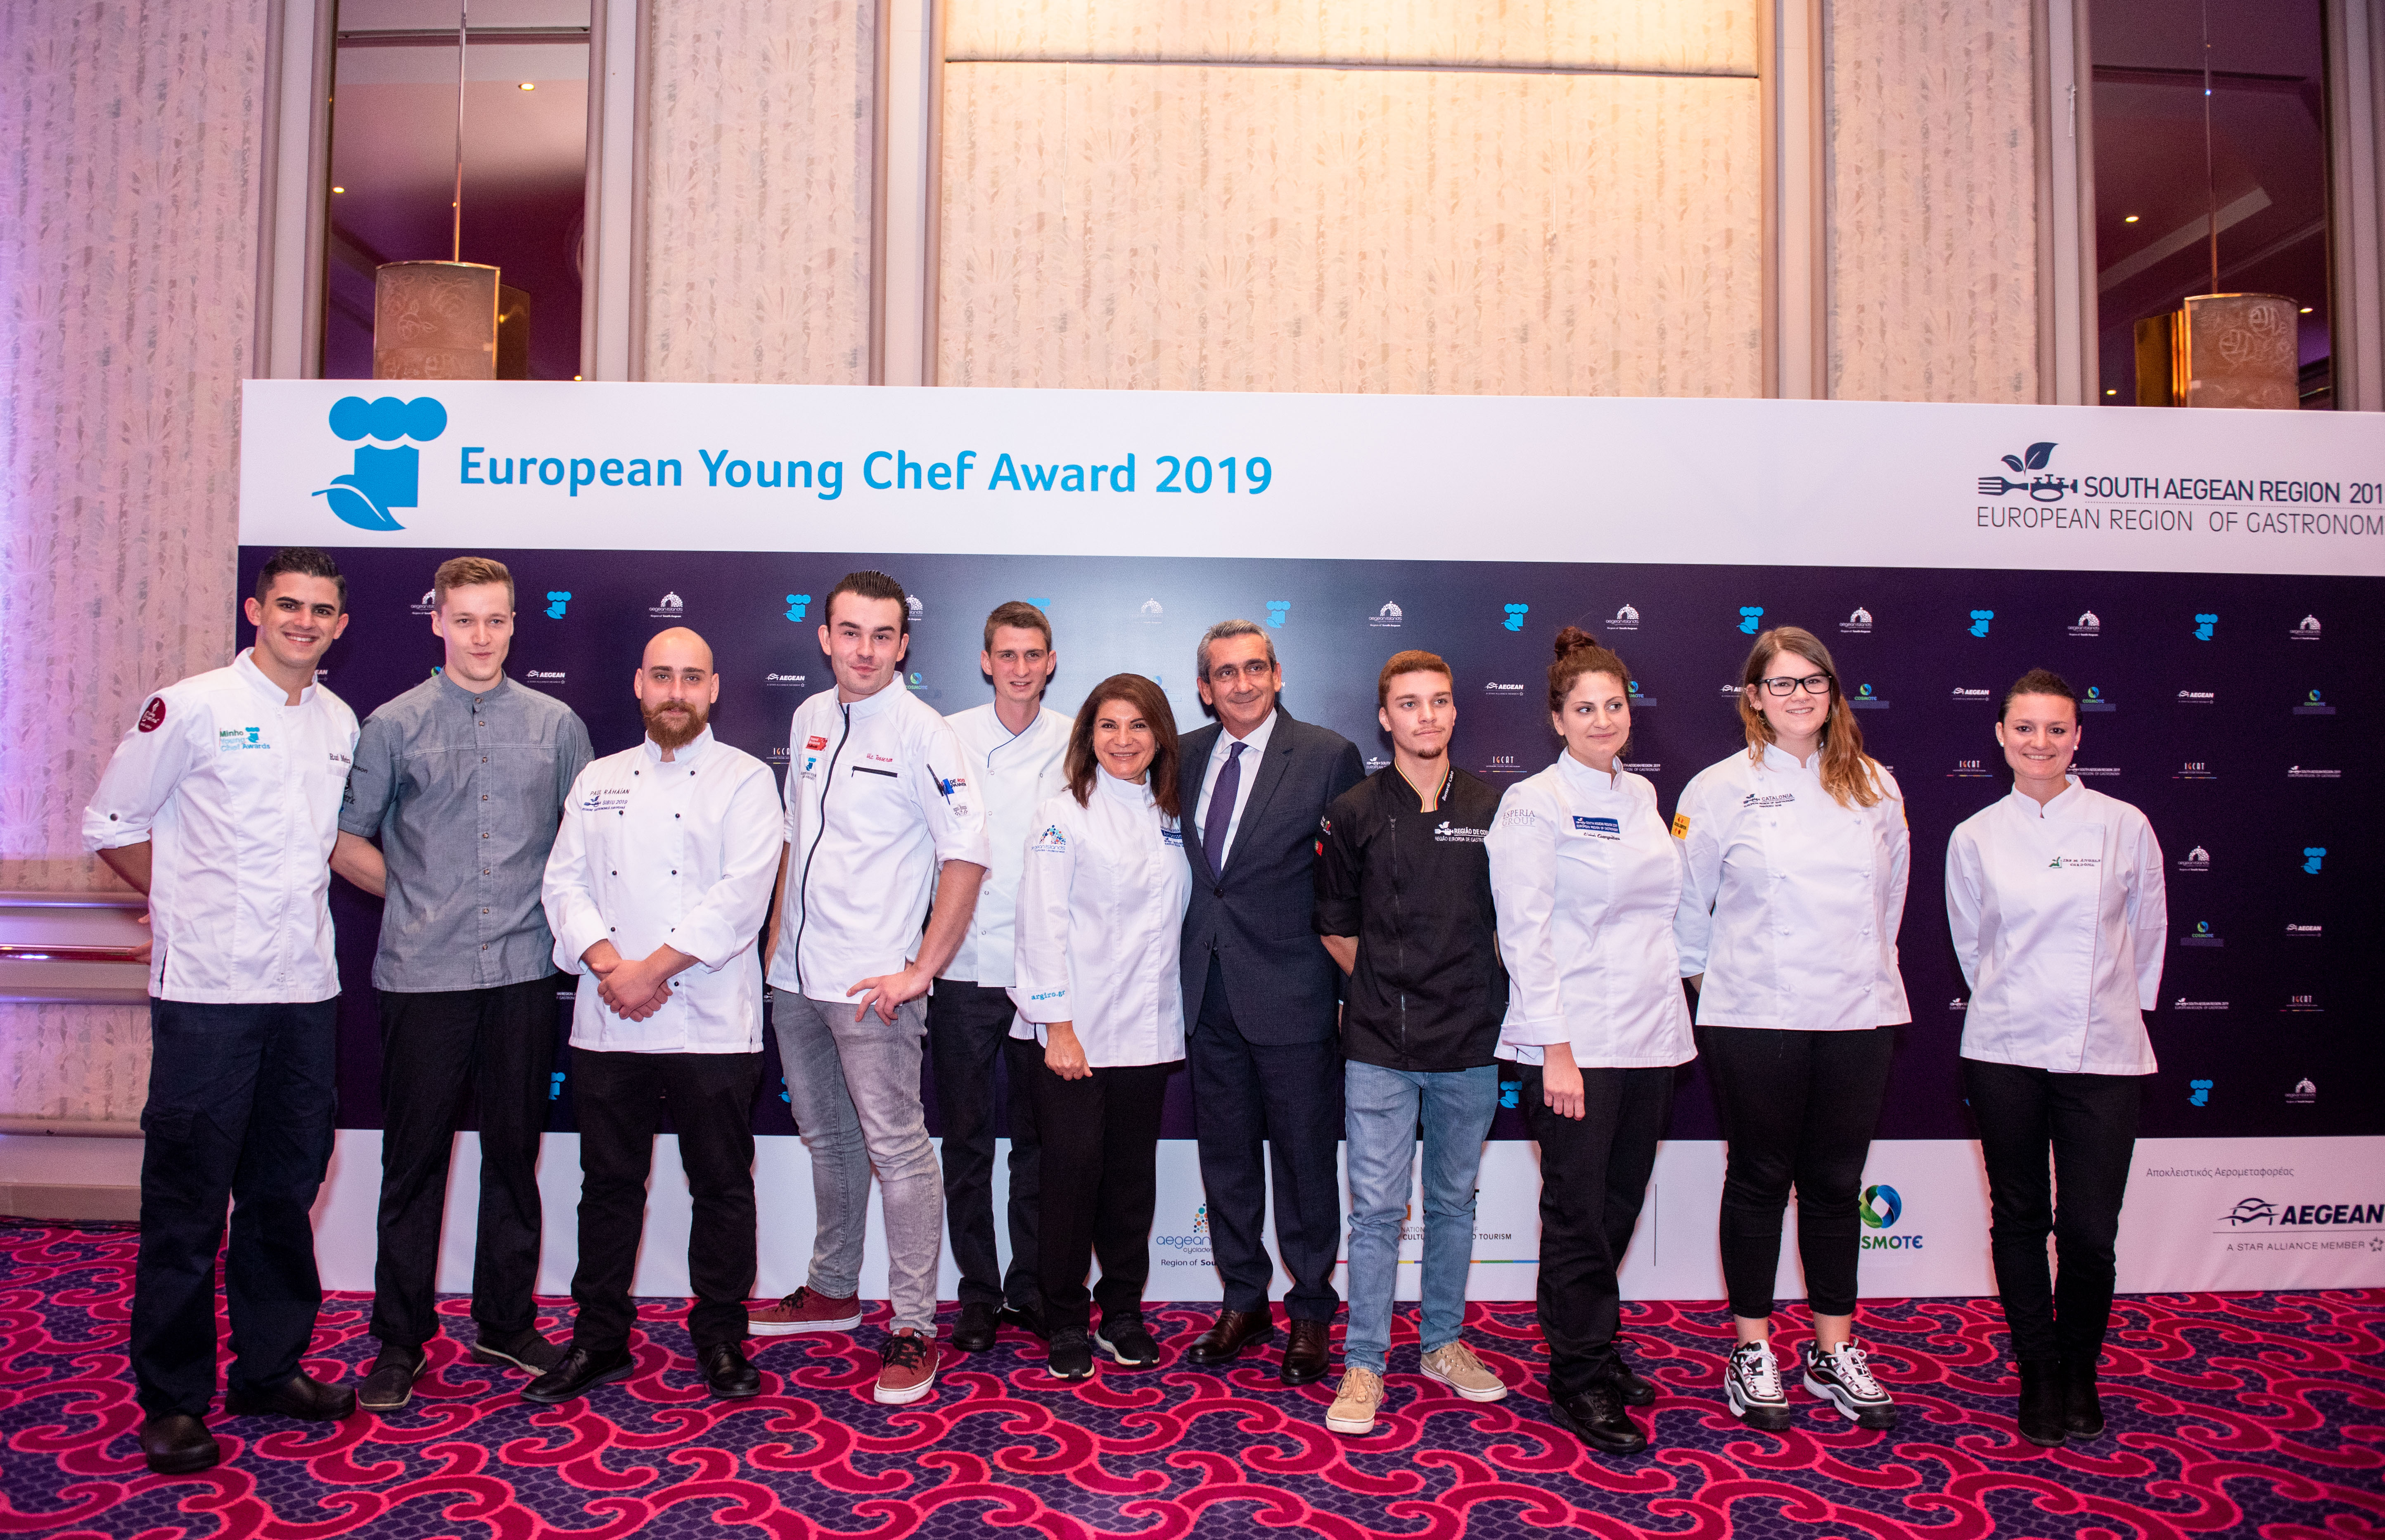 European Young Chef Award 2019